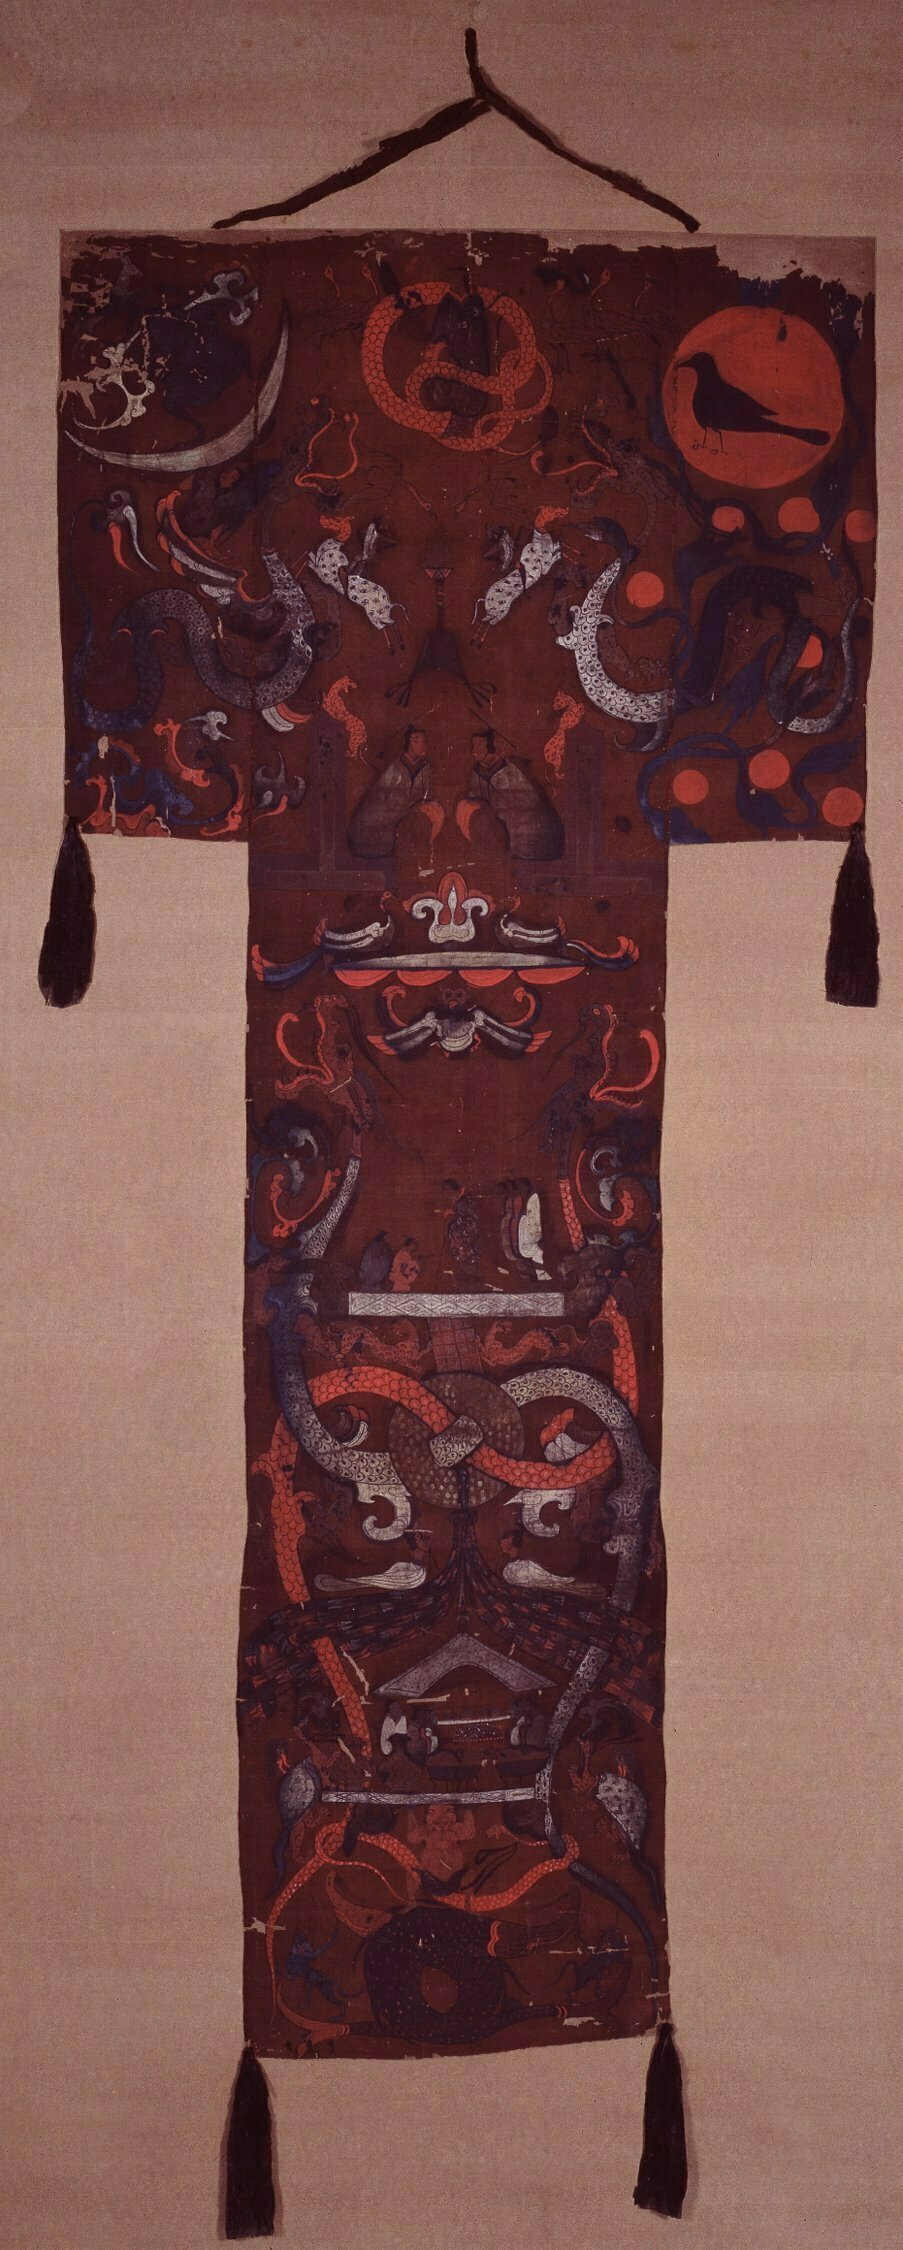 Mawangdui_silk_banner_from_tomb_no1